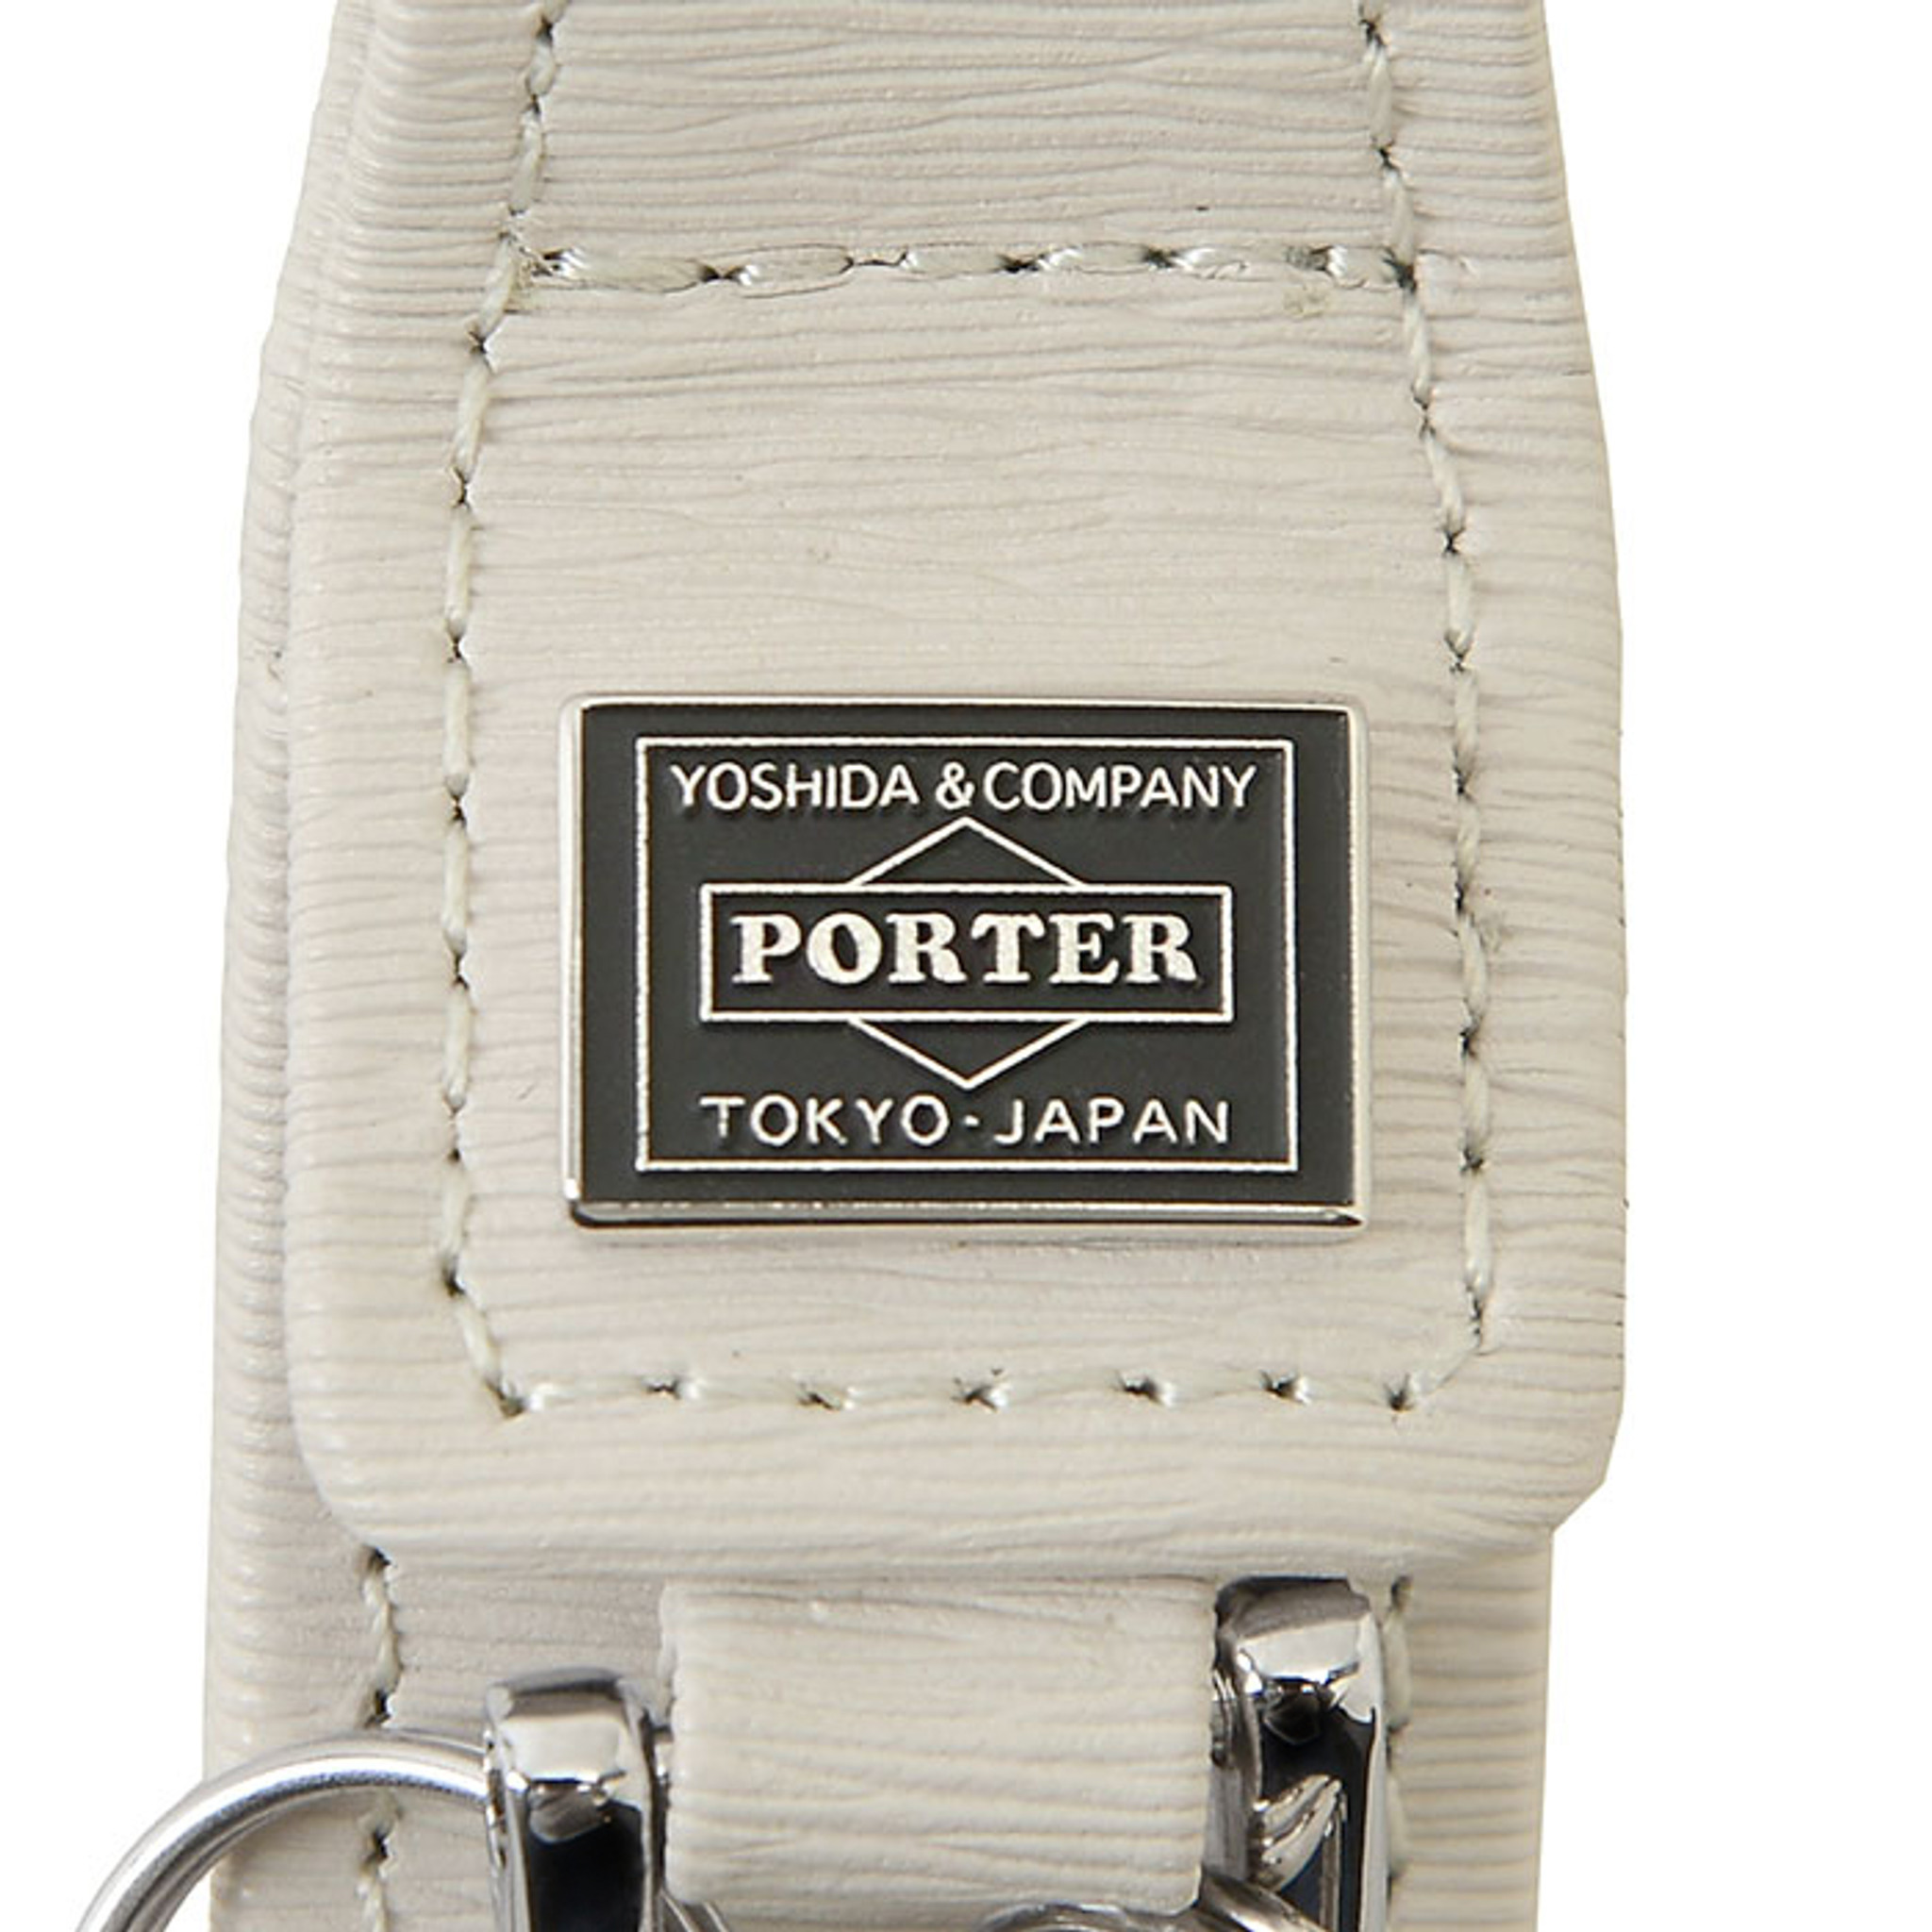 NEW YOSHIDA PORTER CURRENT KEY HOLDER 052-02217 Black With tracking From Japan